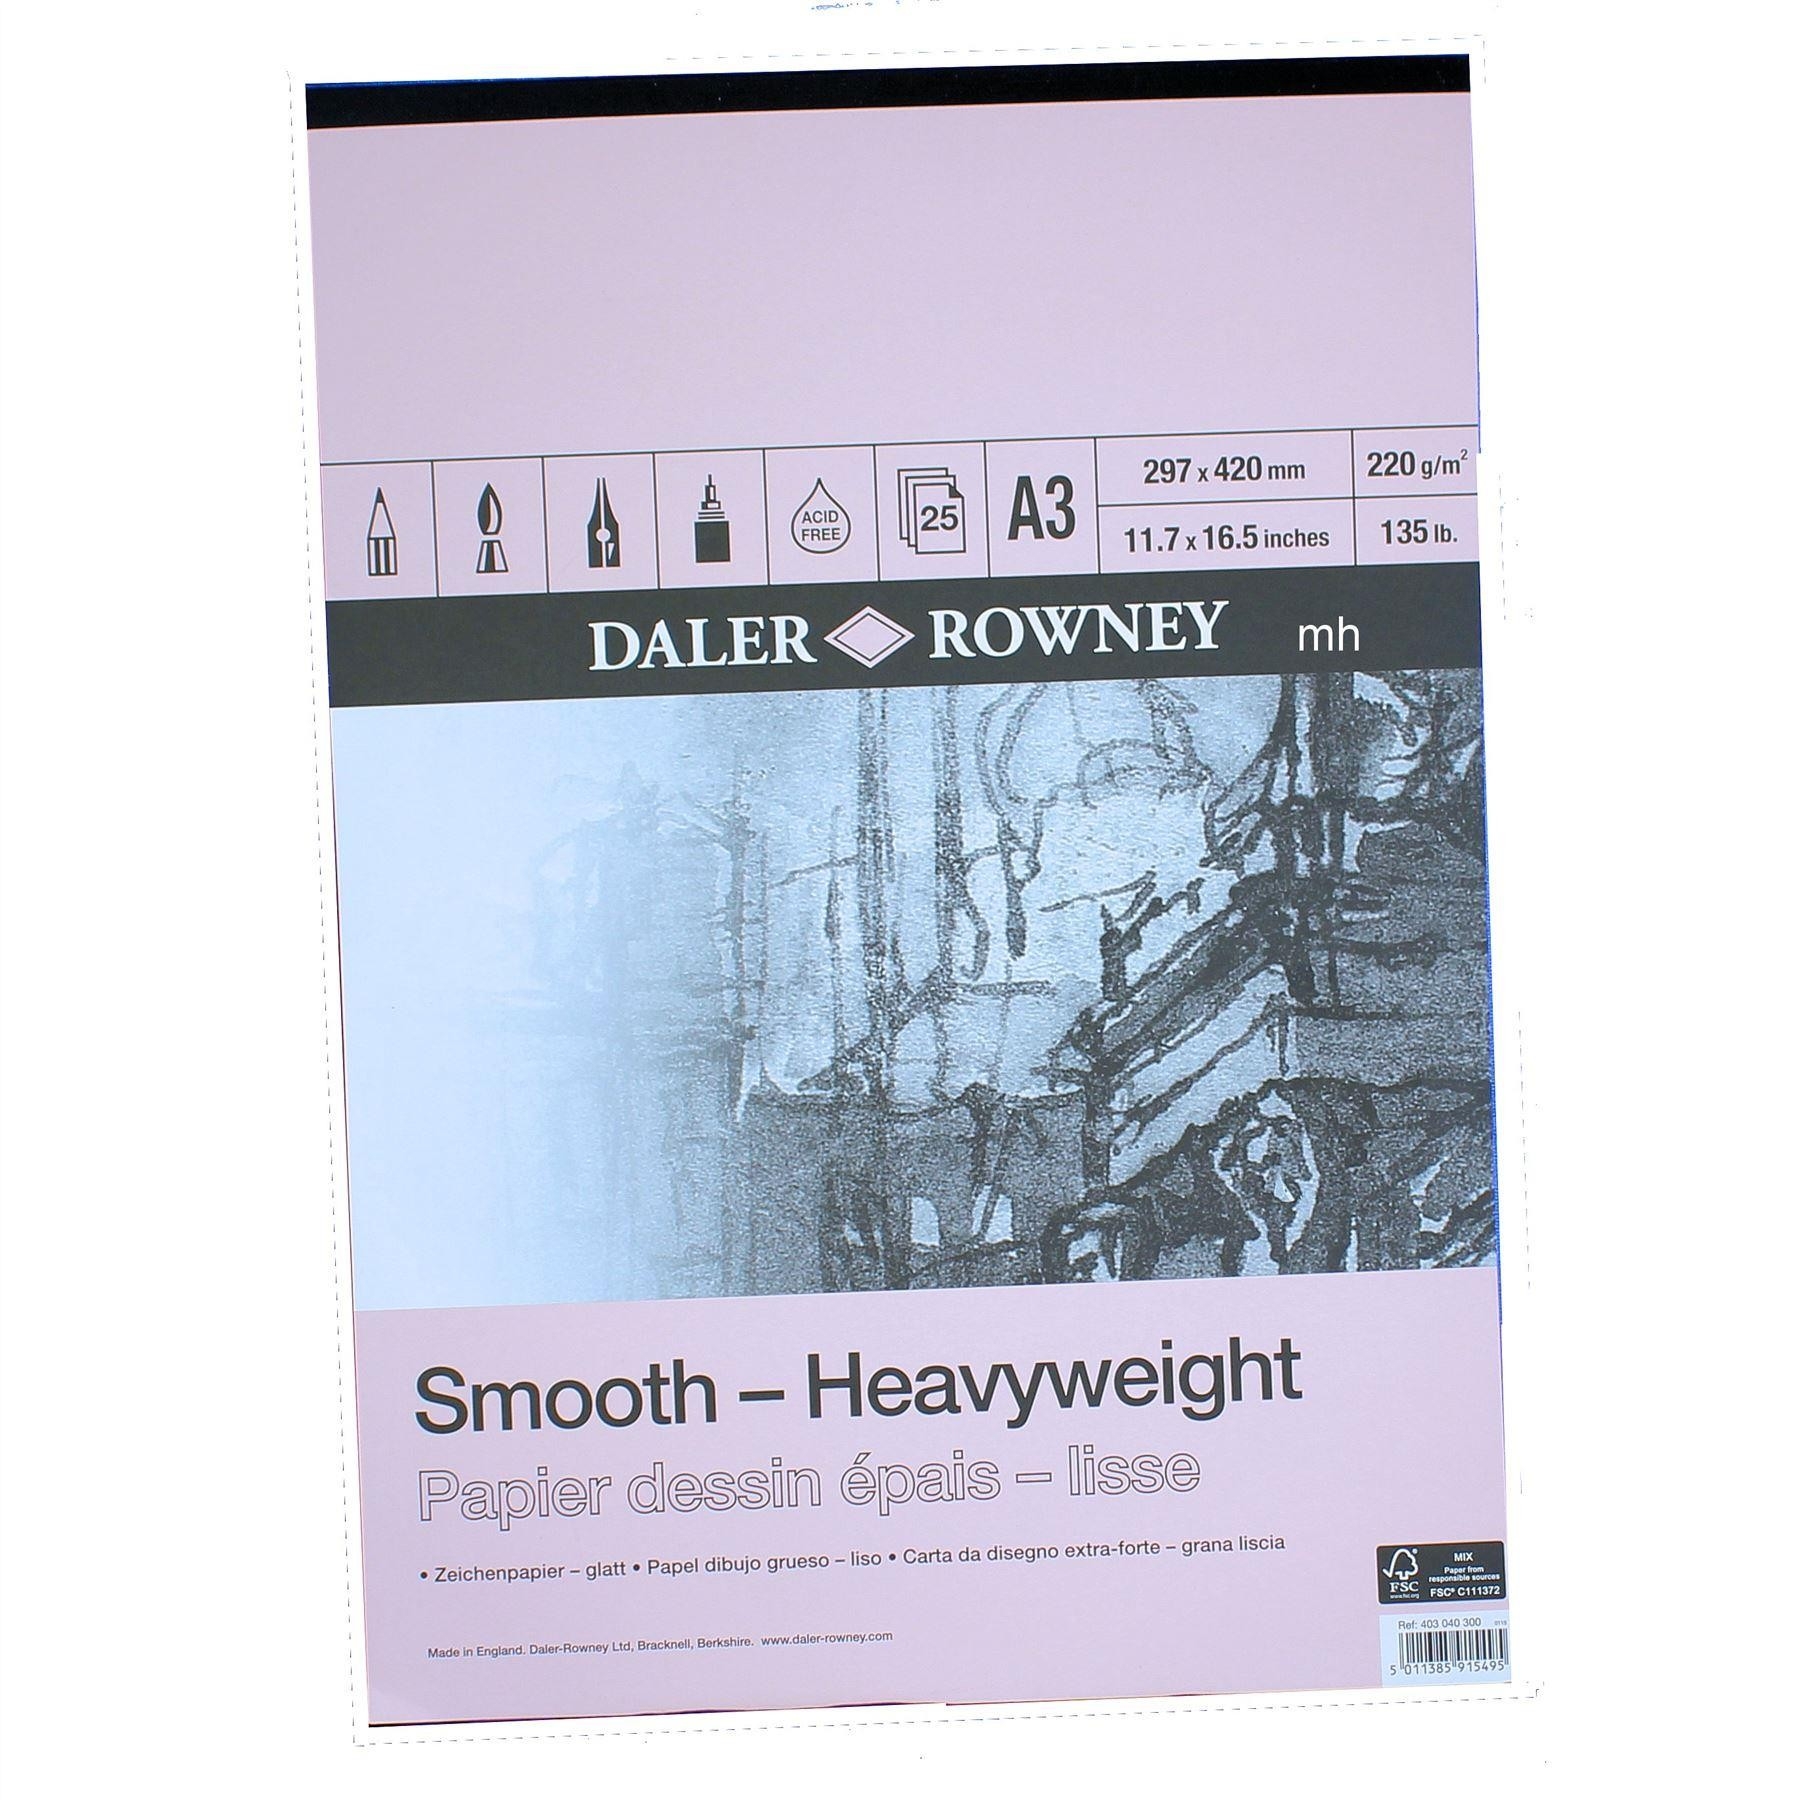 Daler Rowney Heavy Weight Cartridge Paper Pad  220gsm 25 sheets assorted sizes